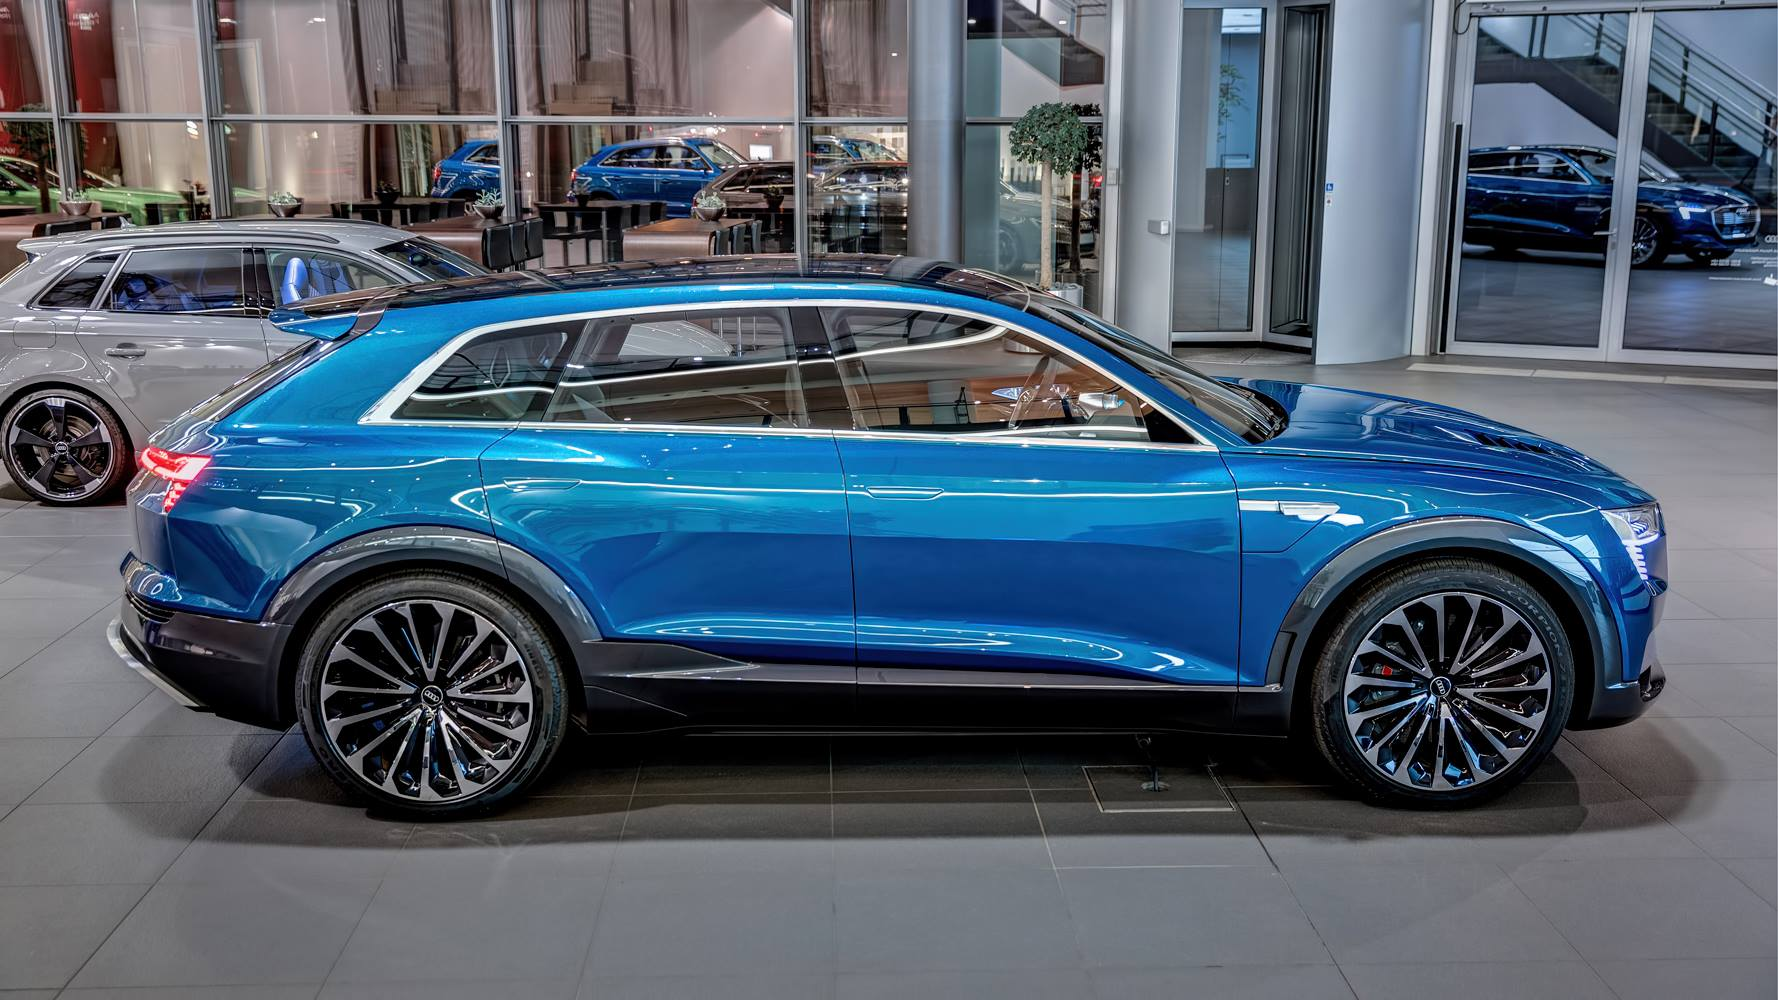 ... Audi E Tron Quattro Concept Arrives At Audi Forum Neckarsulm ...